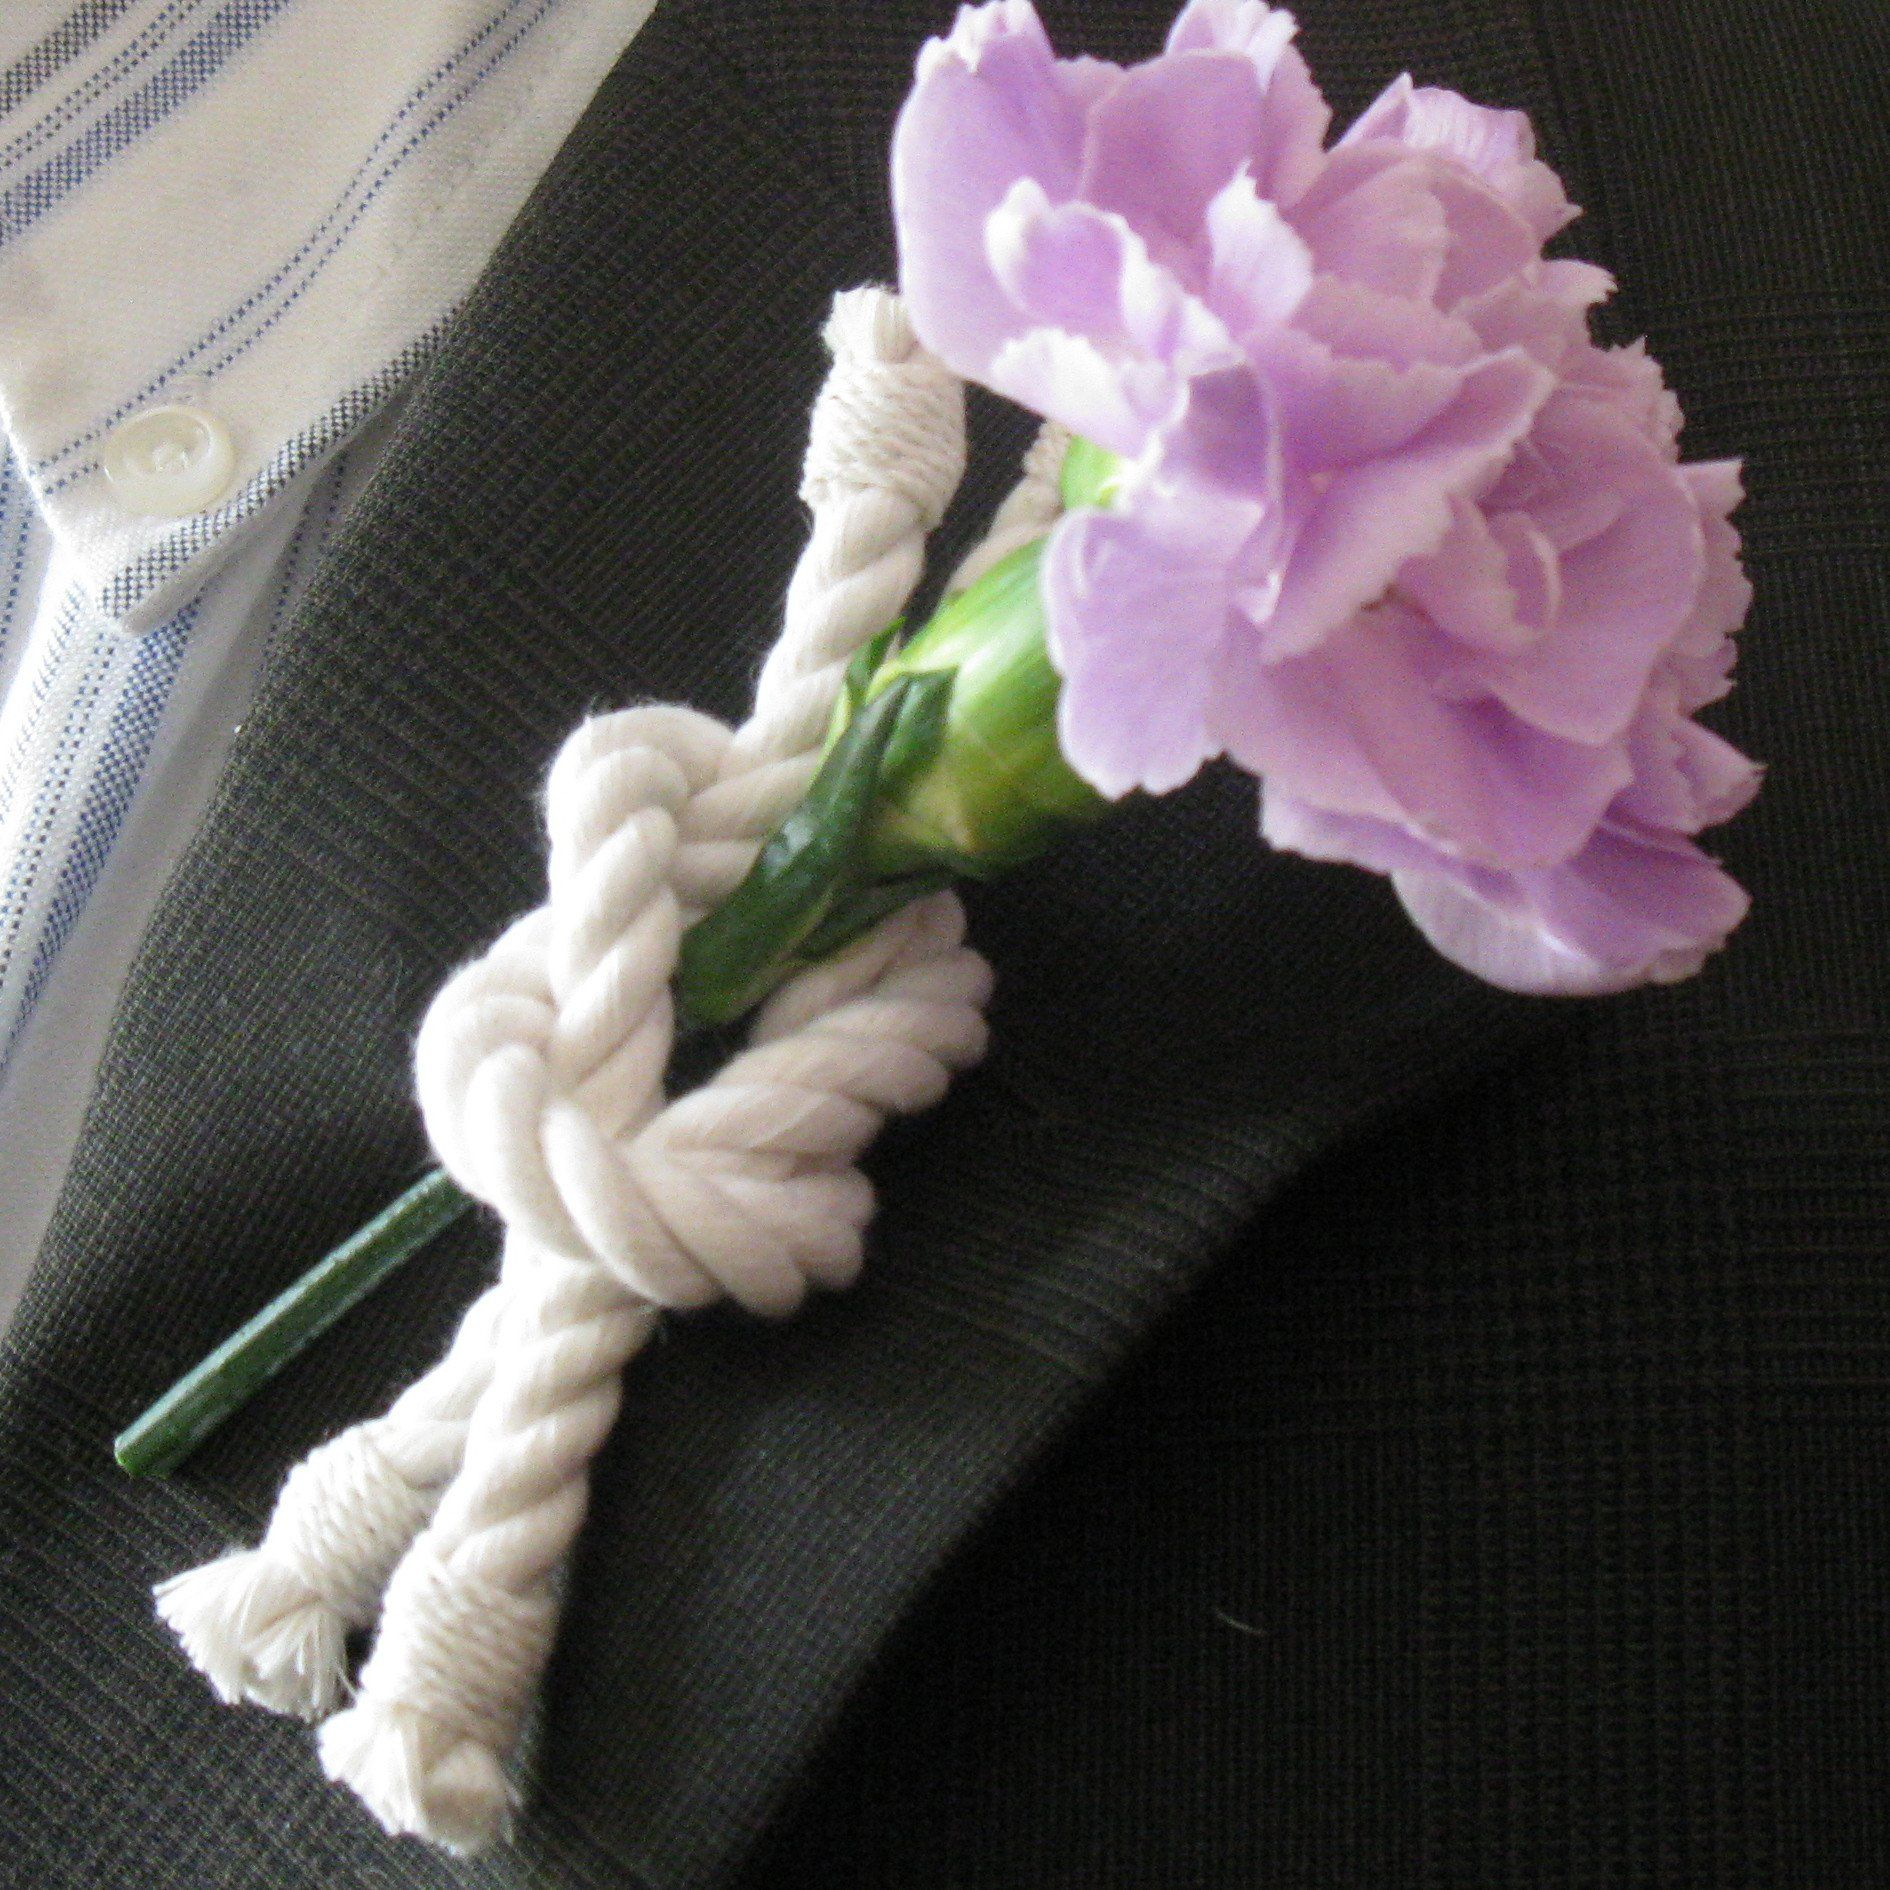 Nautical Reef Knot Boutonniere Handmade sailor knot American Made in Mystic, CT $ 4.00